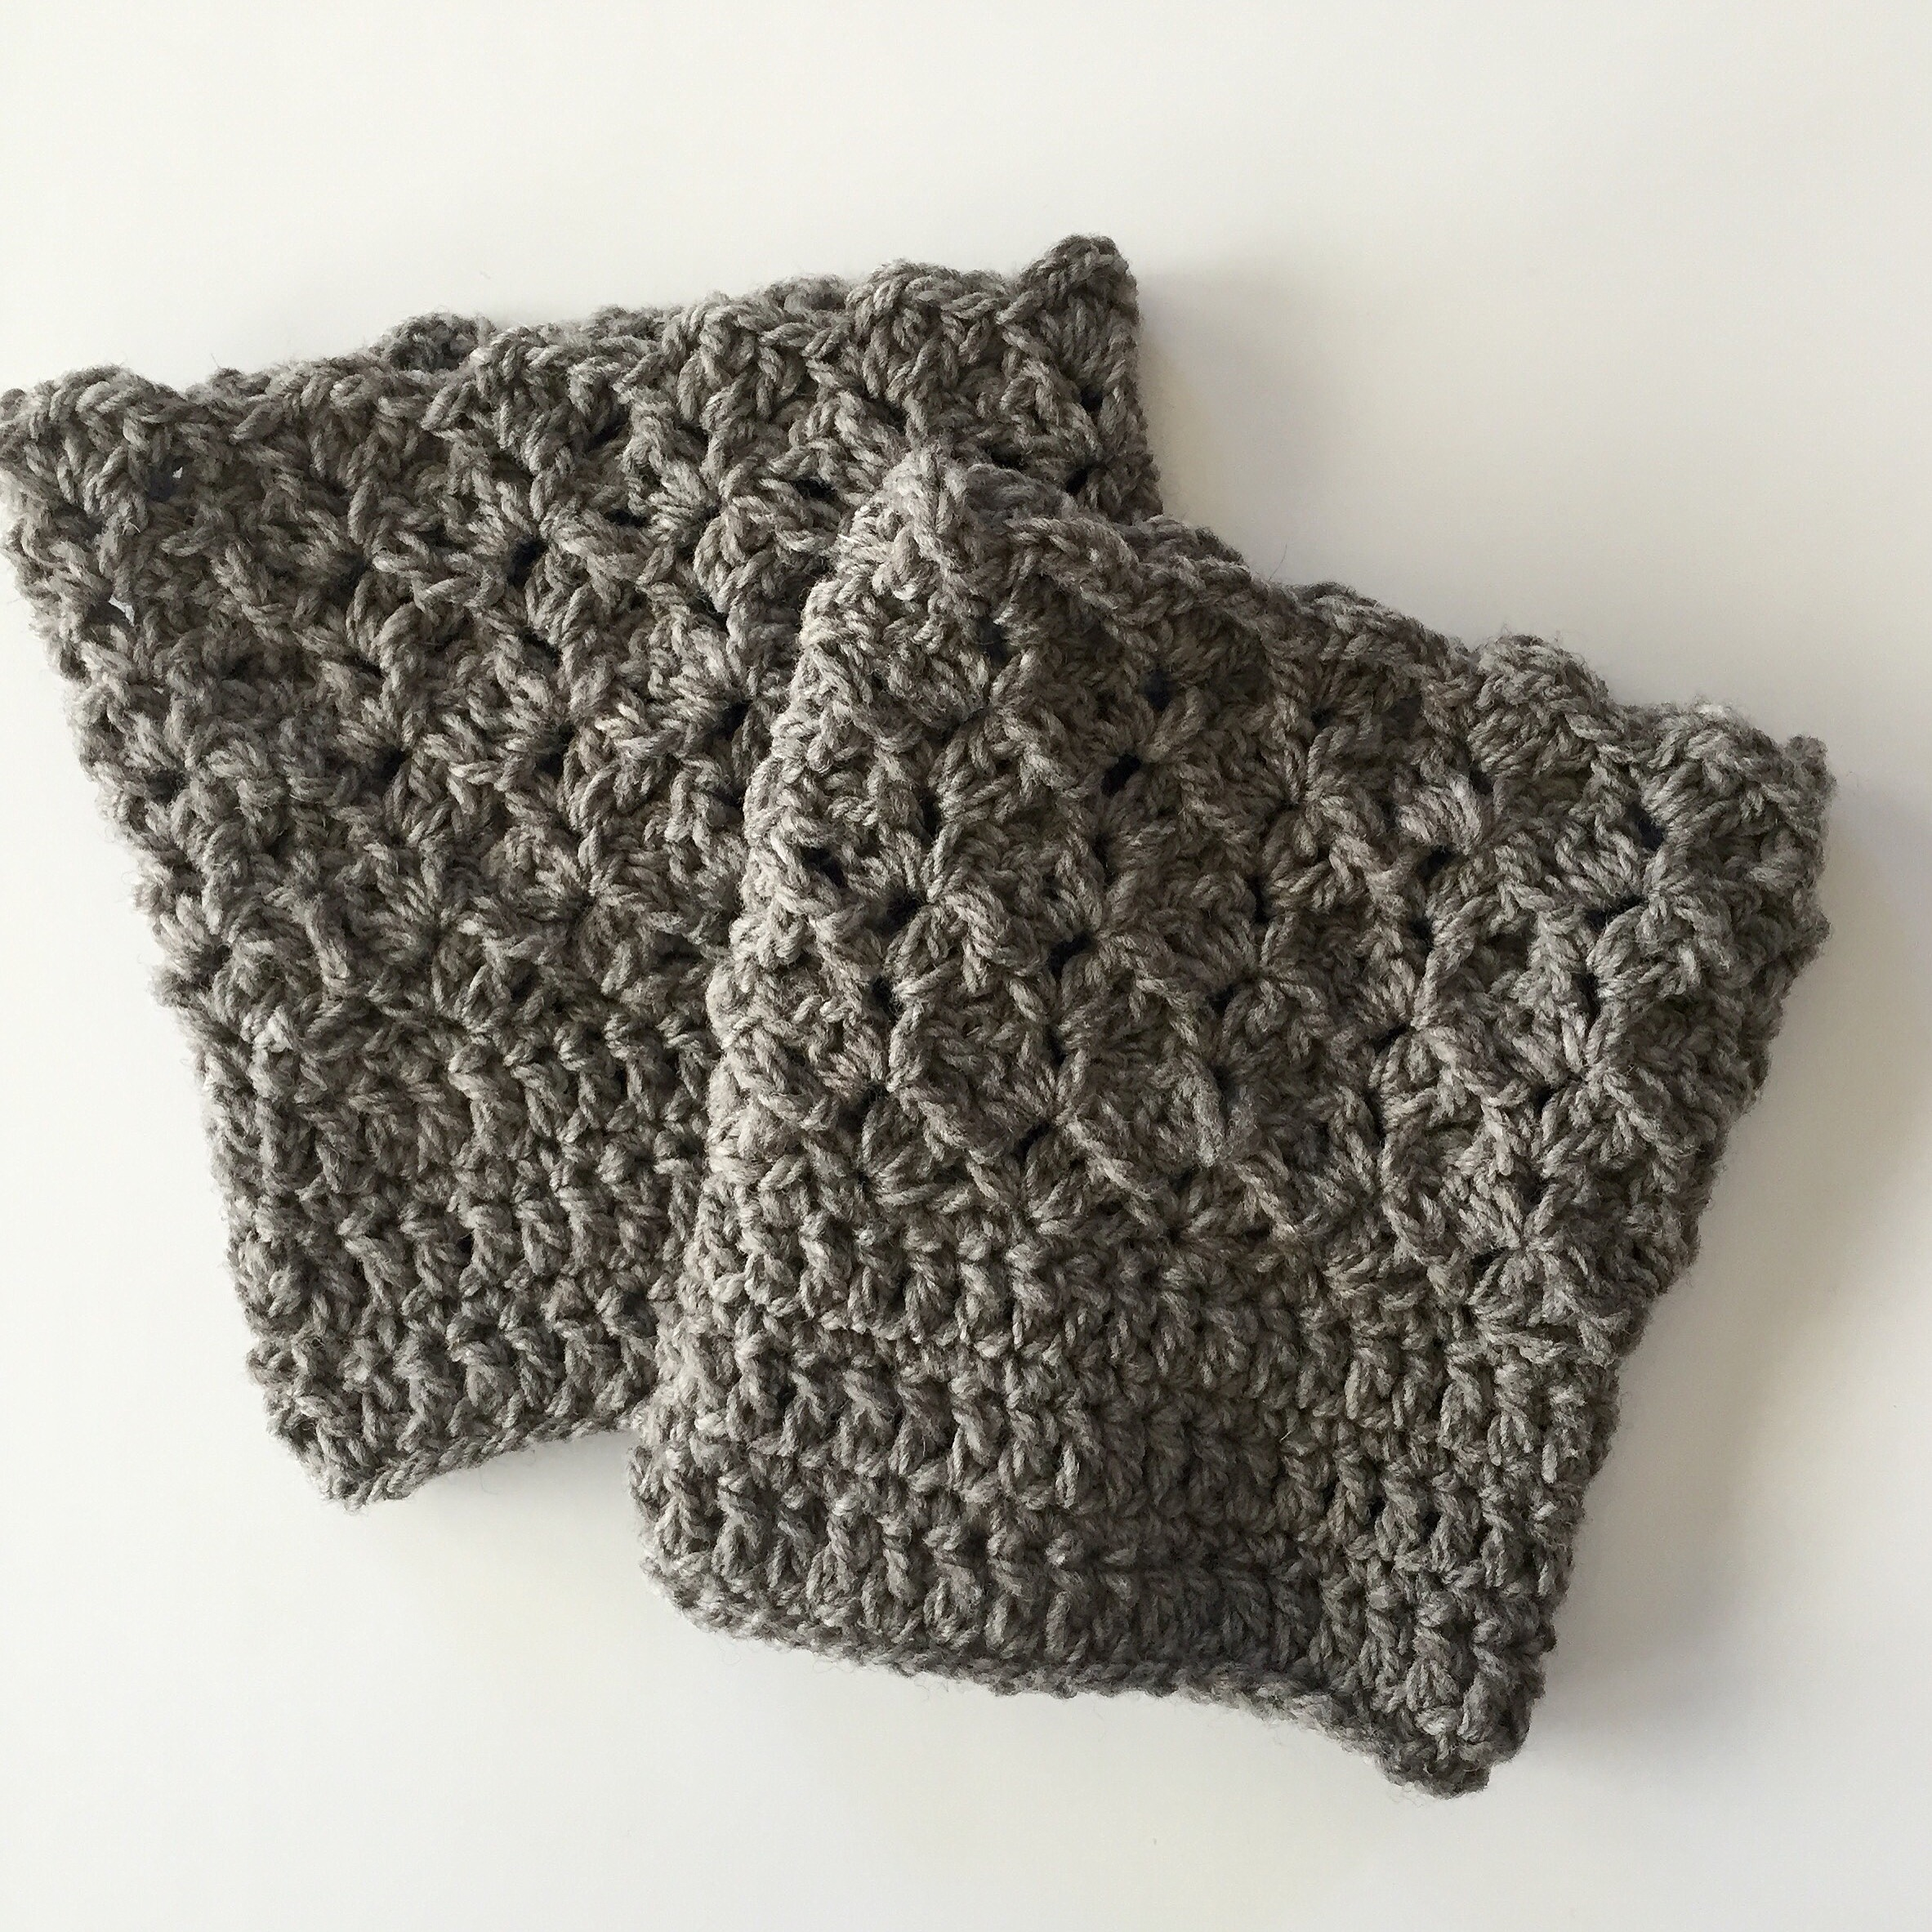 Queen Lace Boot Cuffs in grey wool